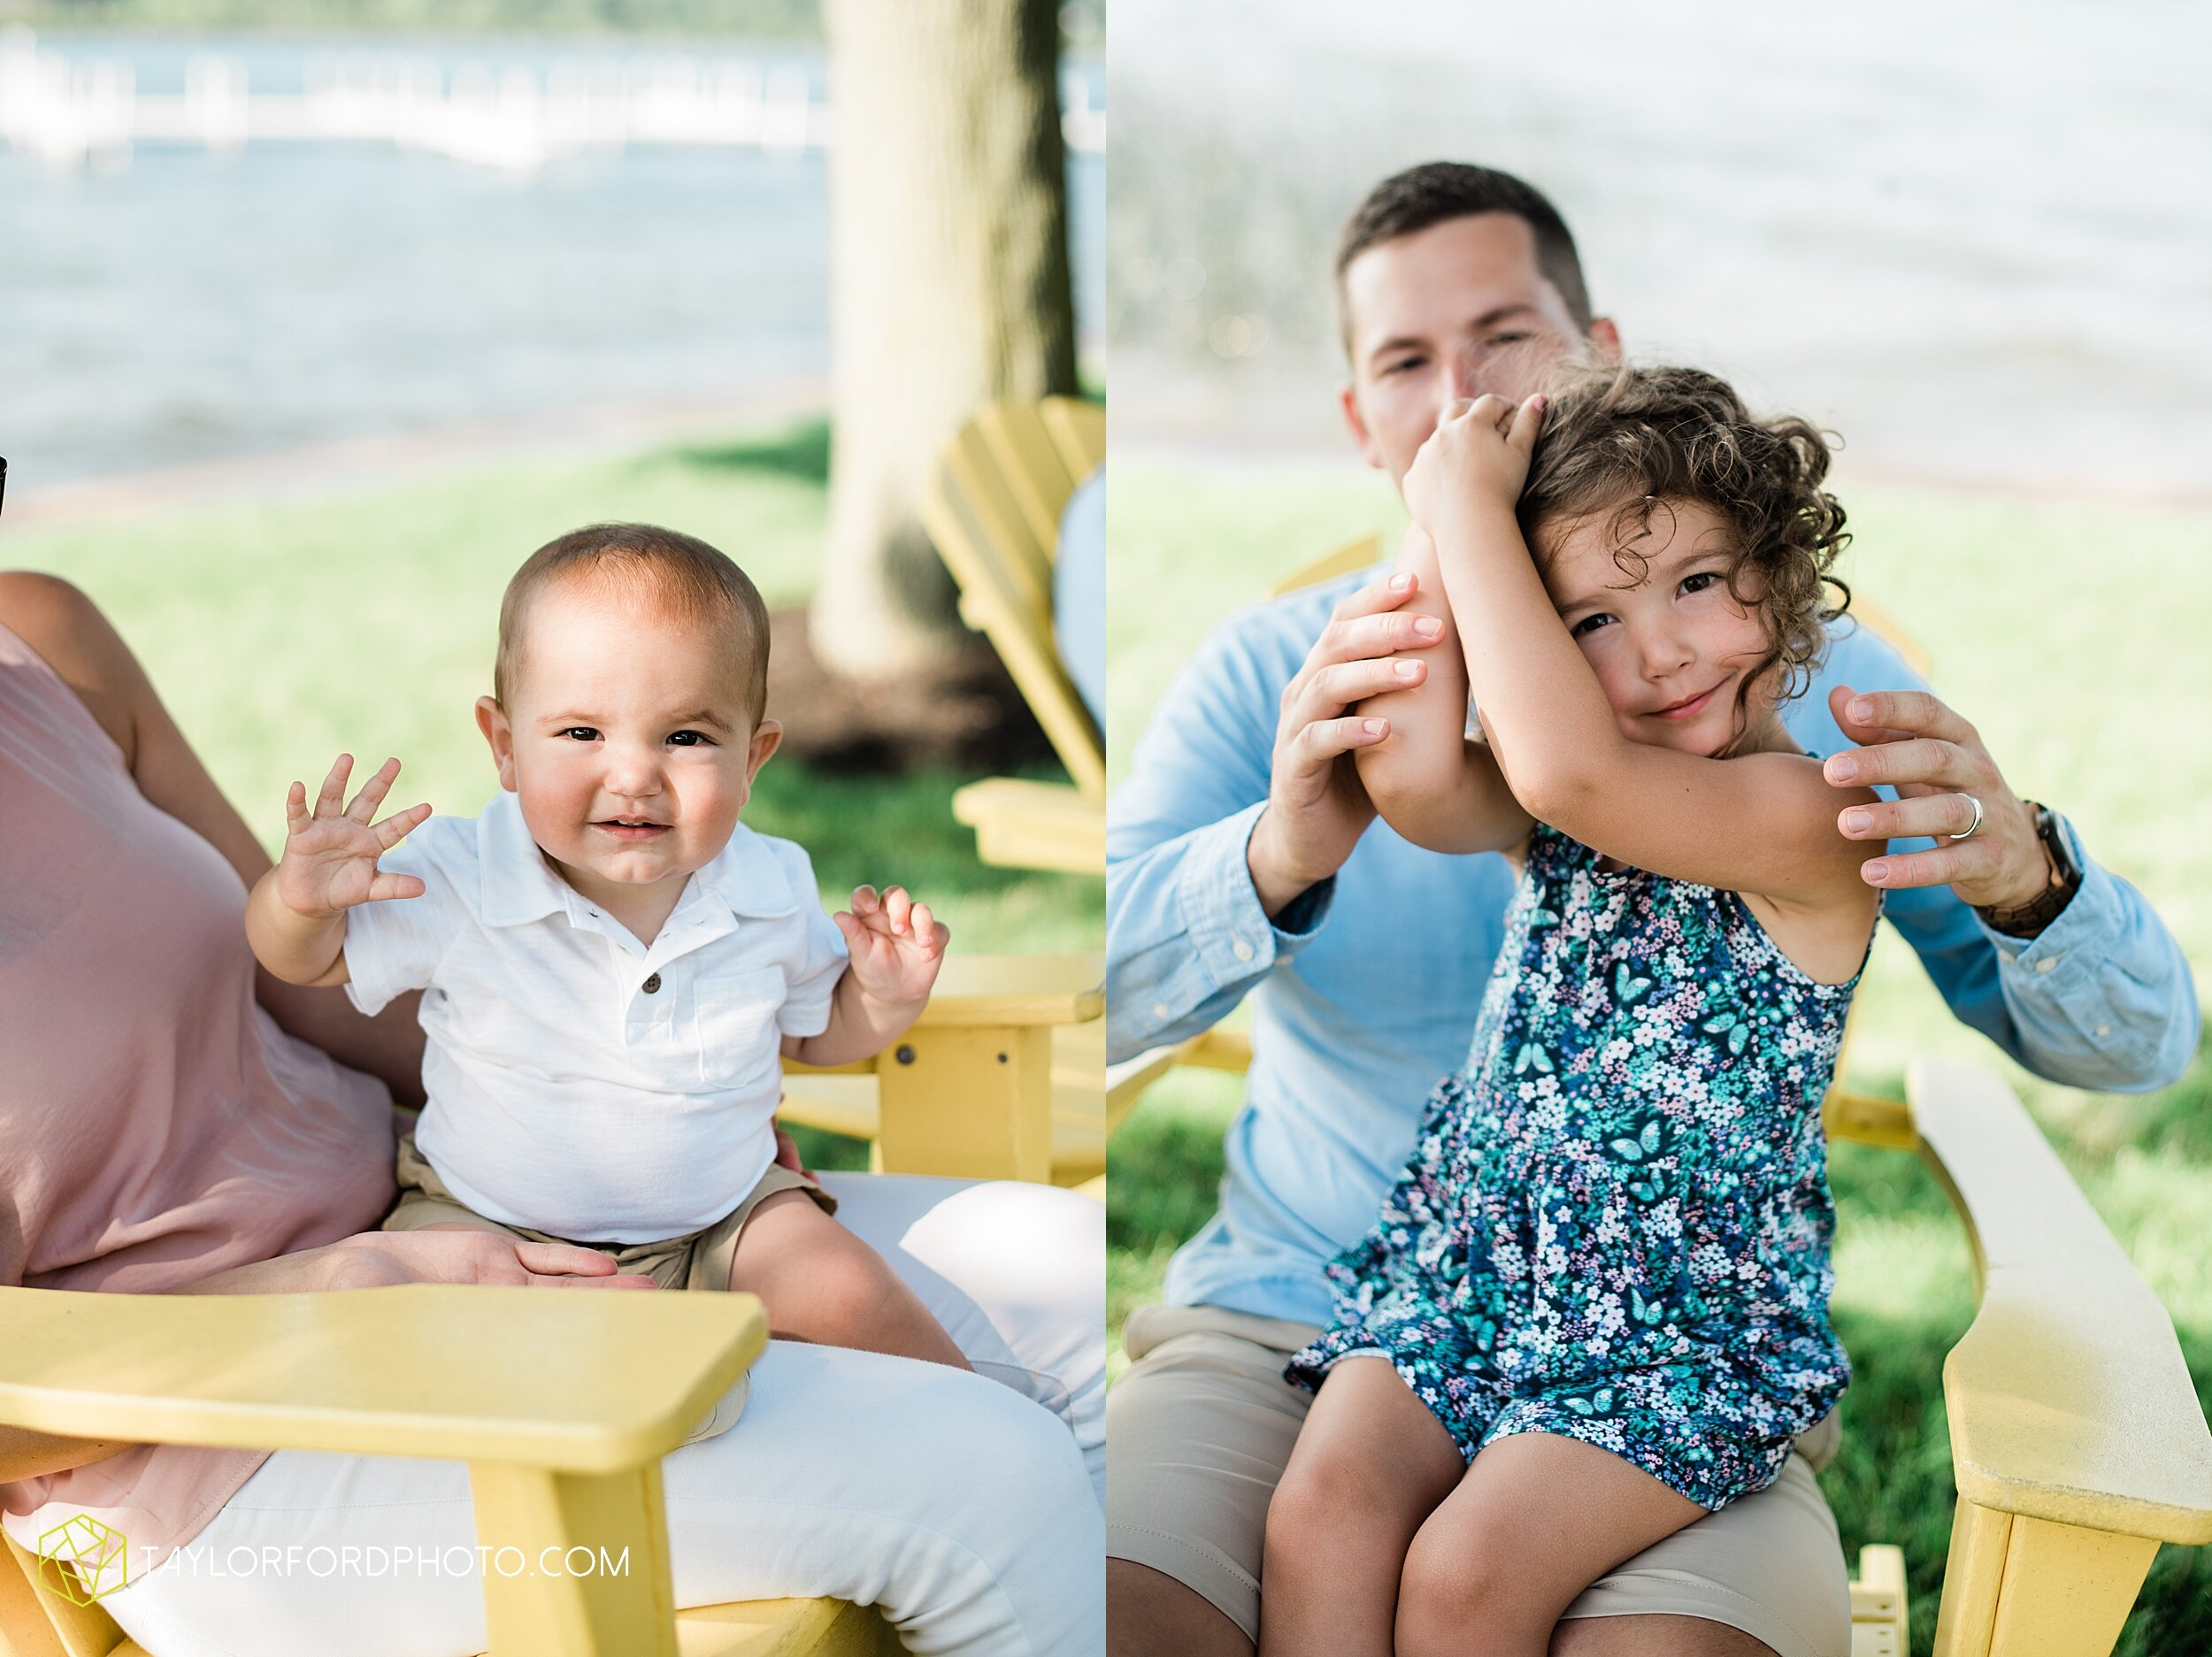 lake-wawasee-syracuse-indiana-oakwood-resort-family-mini-fourth-4th-of-july-summer-photography-taylor-ford-hirschy-photographer_3637.jpg